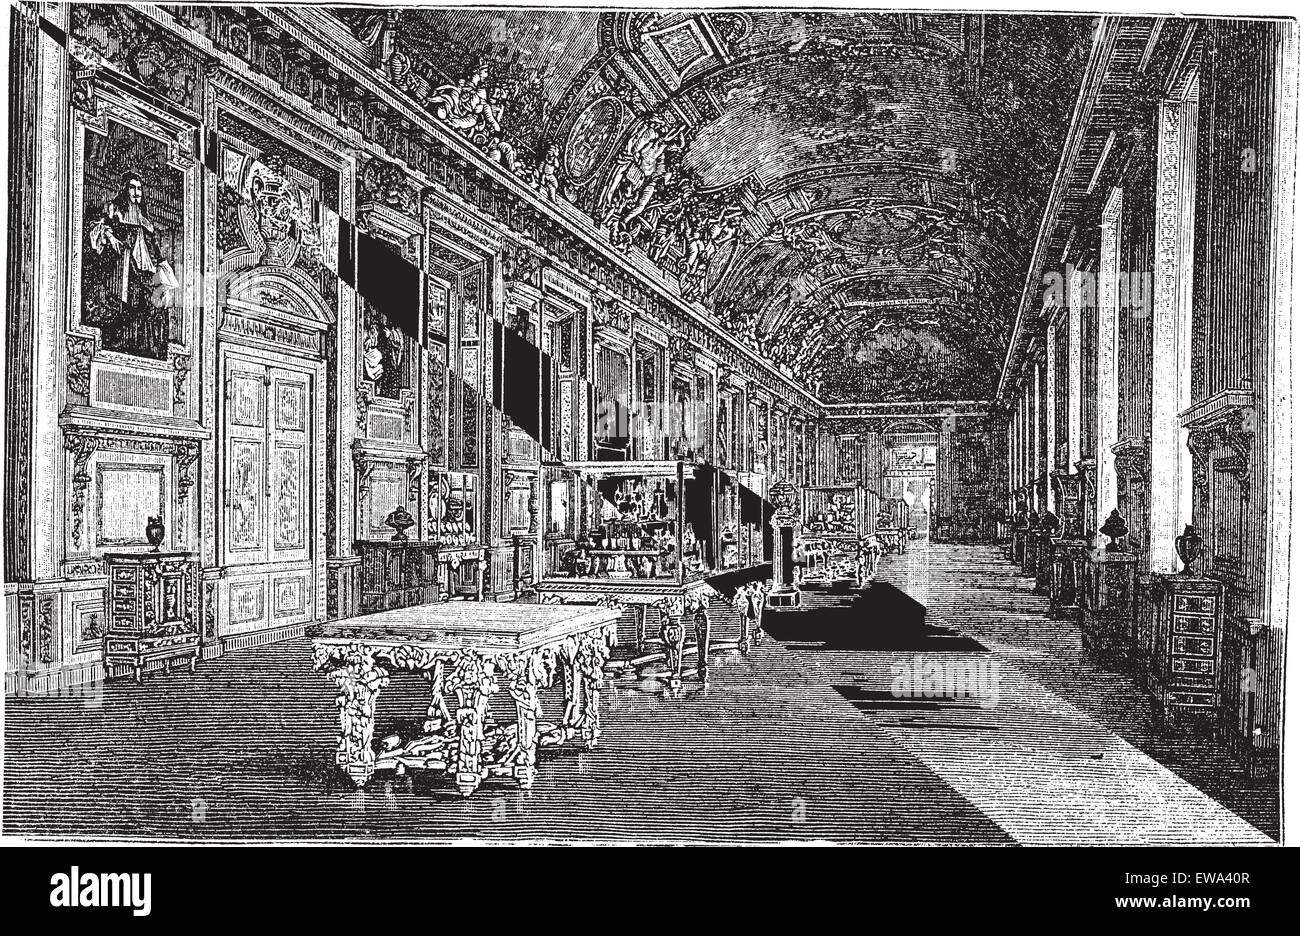 Apollo Gallery at Louvre Museum in Paris, France, during the 1890s, vintage engraving. Old engraved illustration - Stock Vector